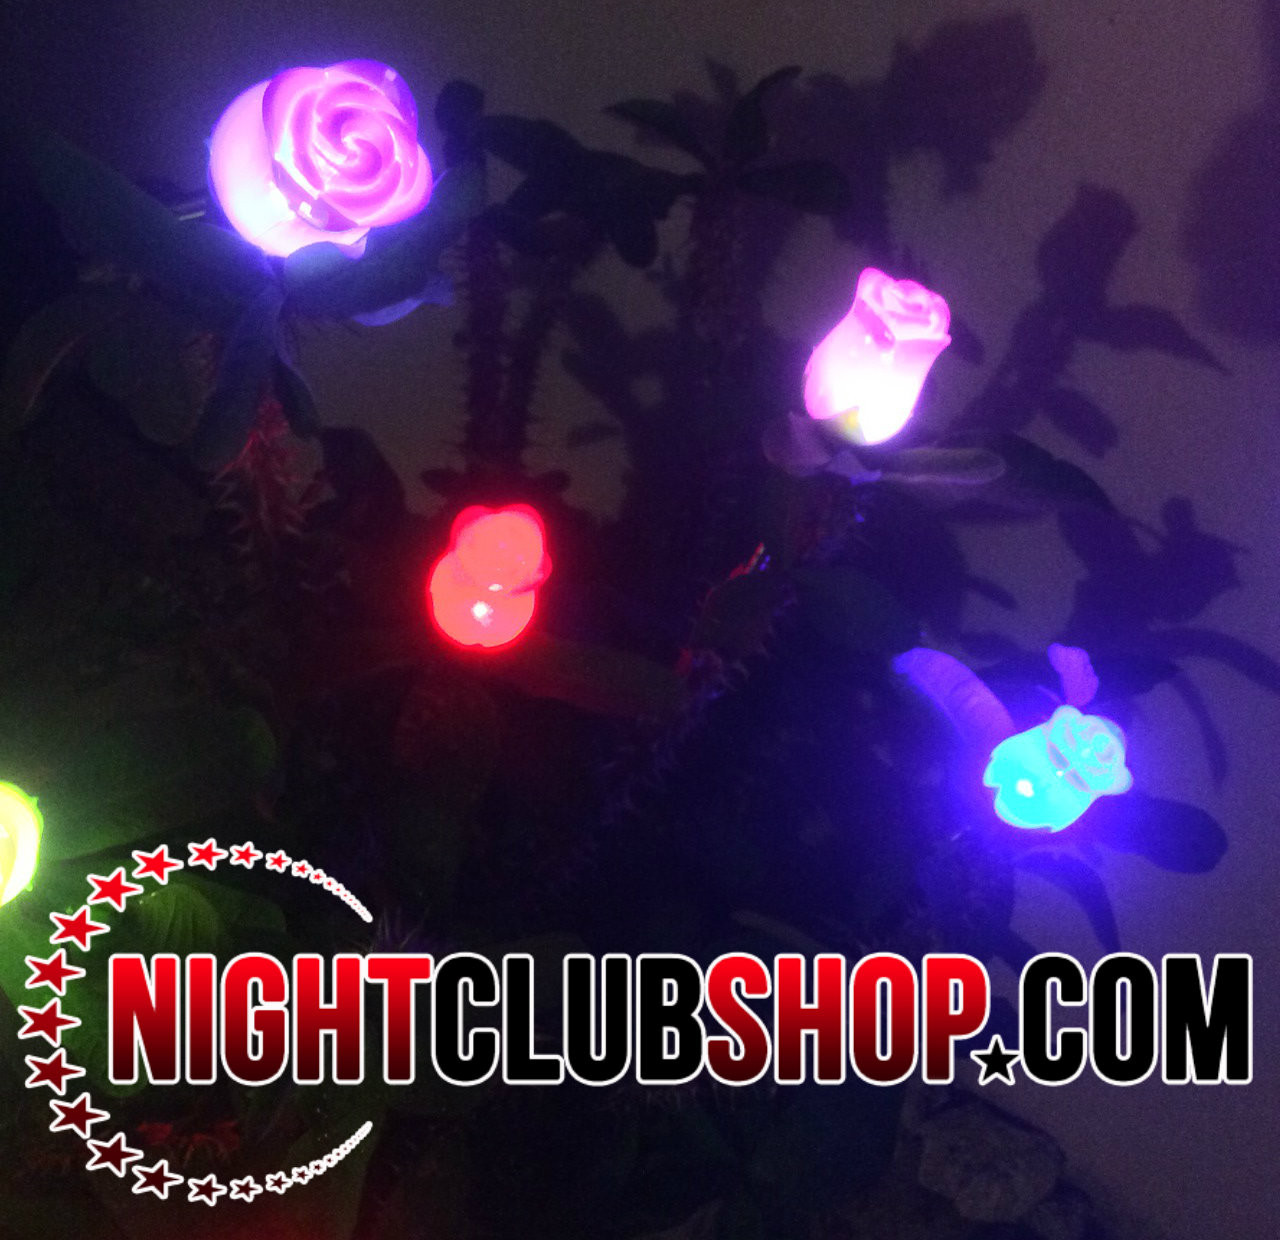 LED Rose, Glow Rose, Rose, LED,flower,Petal, Light up, illuminated,Glow, glowing,  Valentine, valentines, Party favor, Wedding, Keepsake, Ladies Night, Promo, giveaway,sell,twelve, Revenue generator, conversation piece